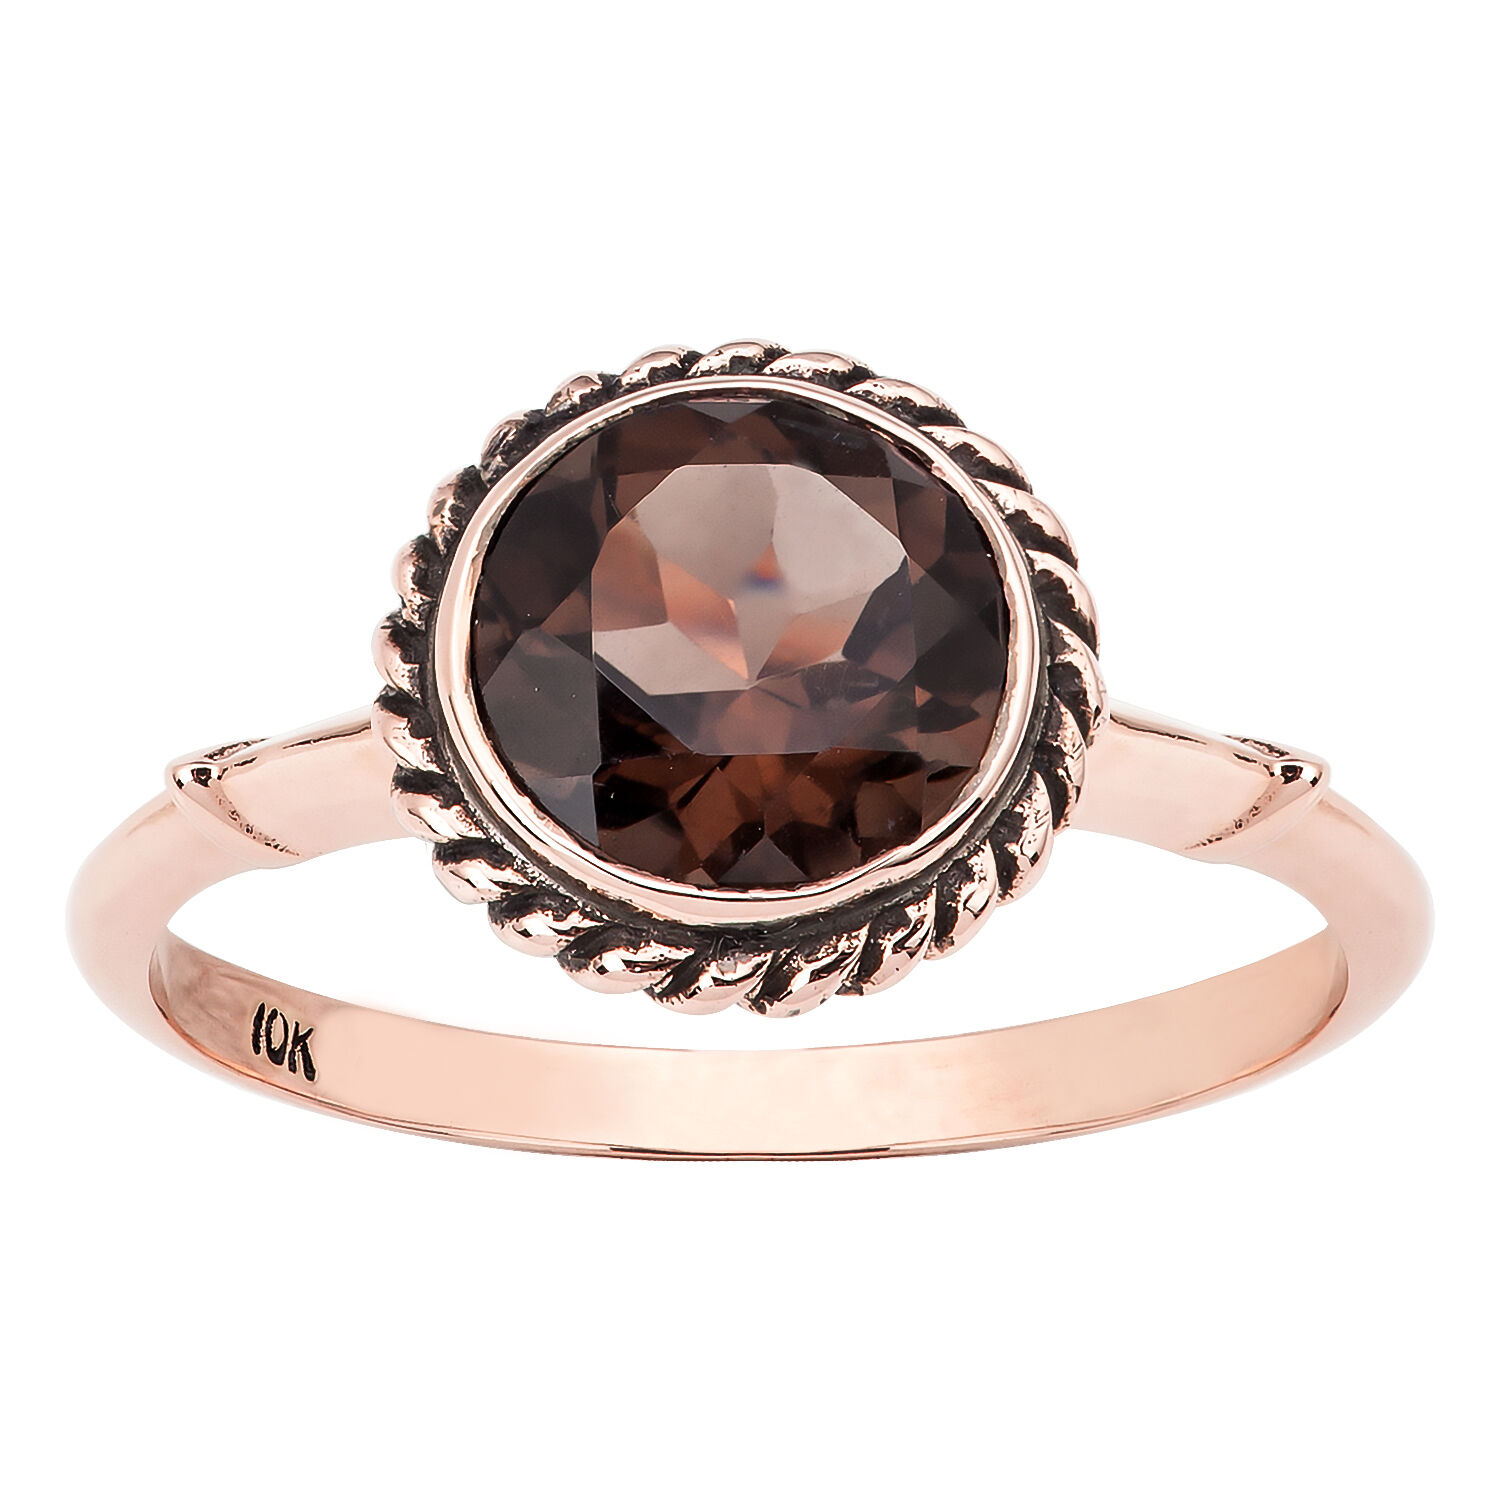 10k pink gold Vintage Style Genuine Round Smoky Quartz Ring Rope gold Trim